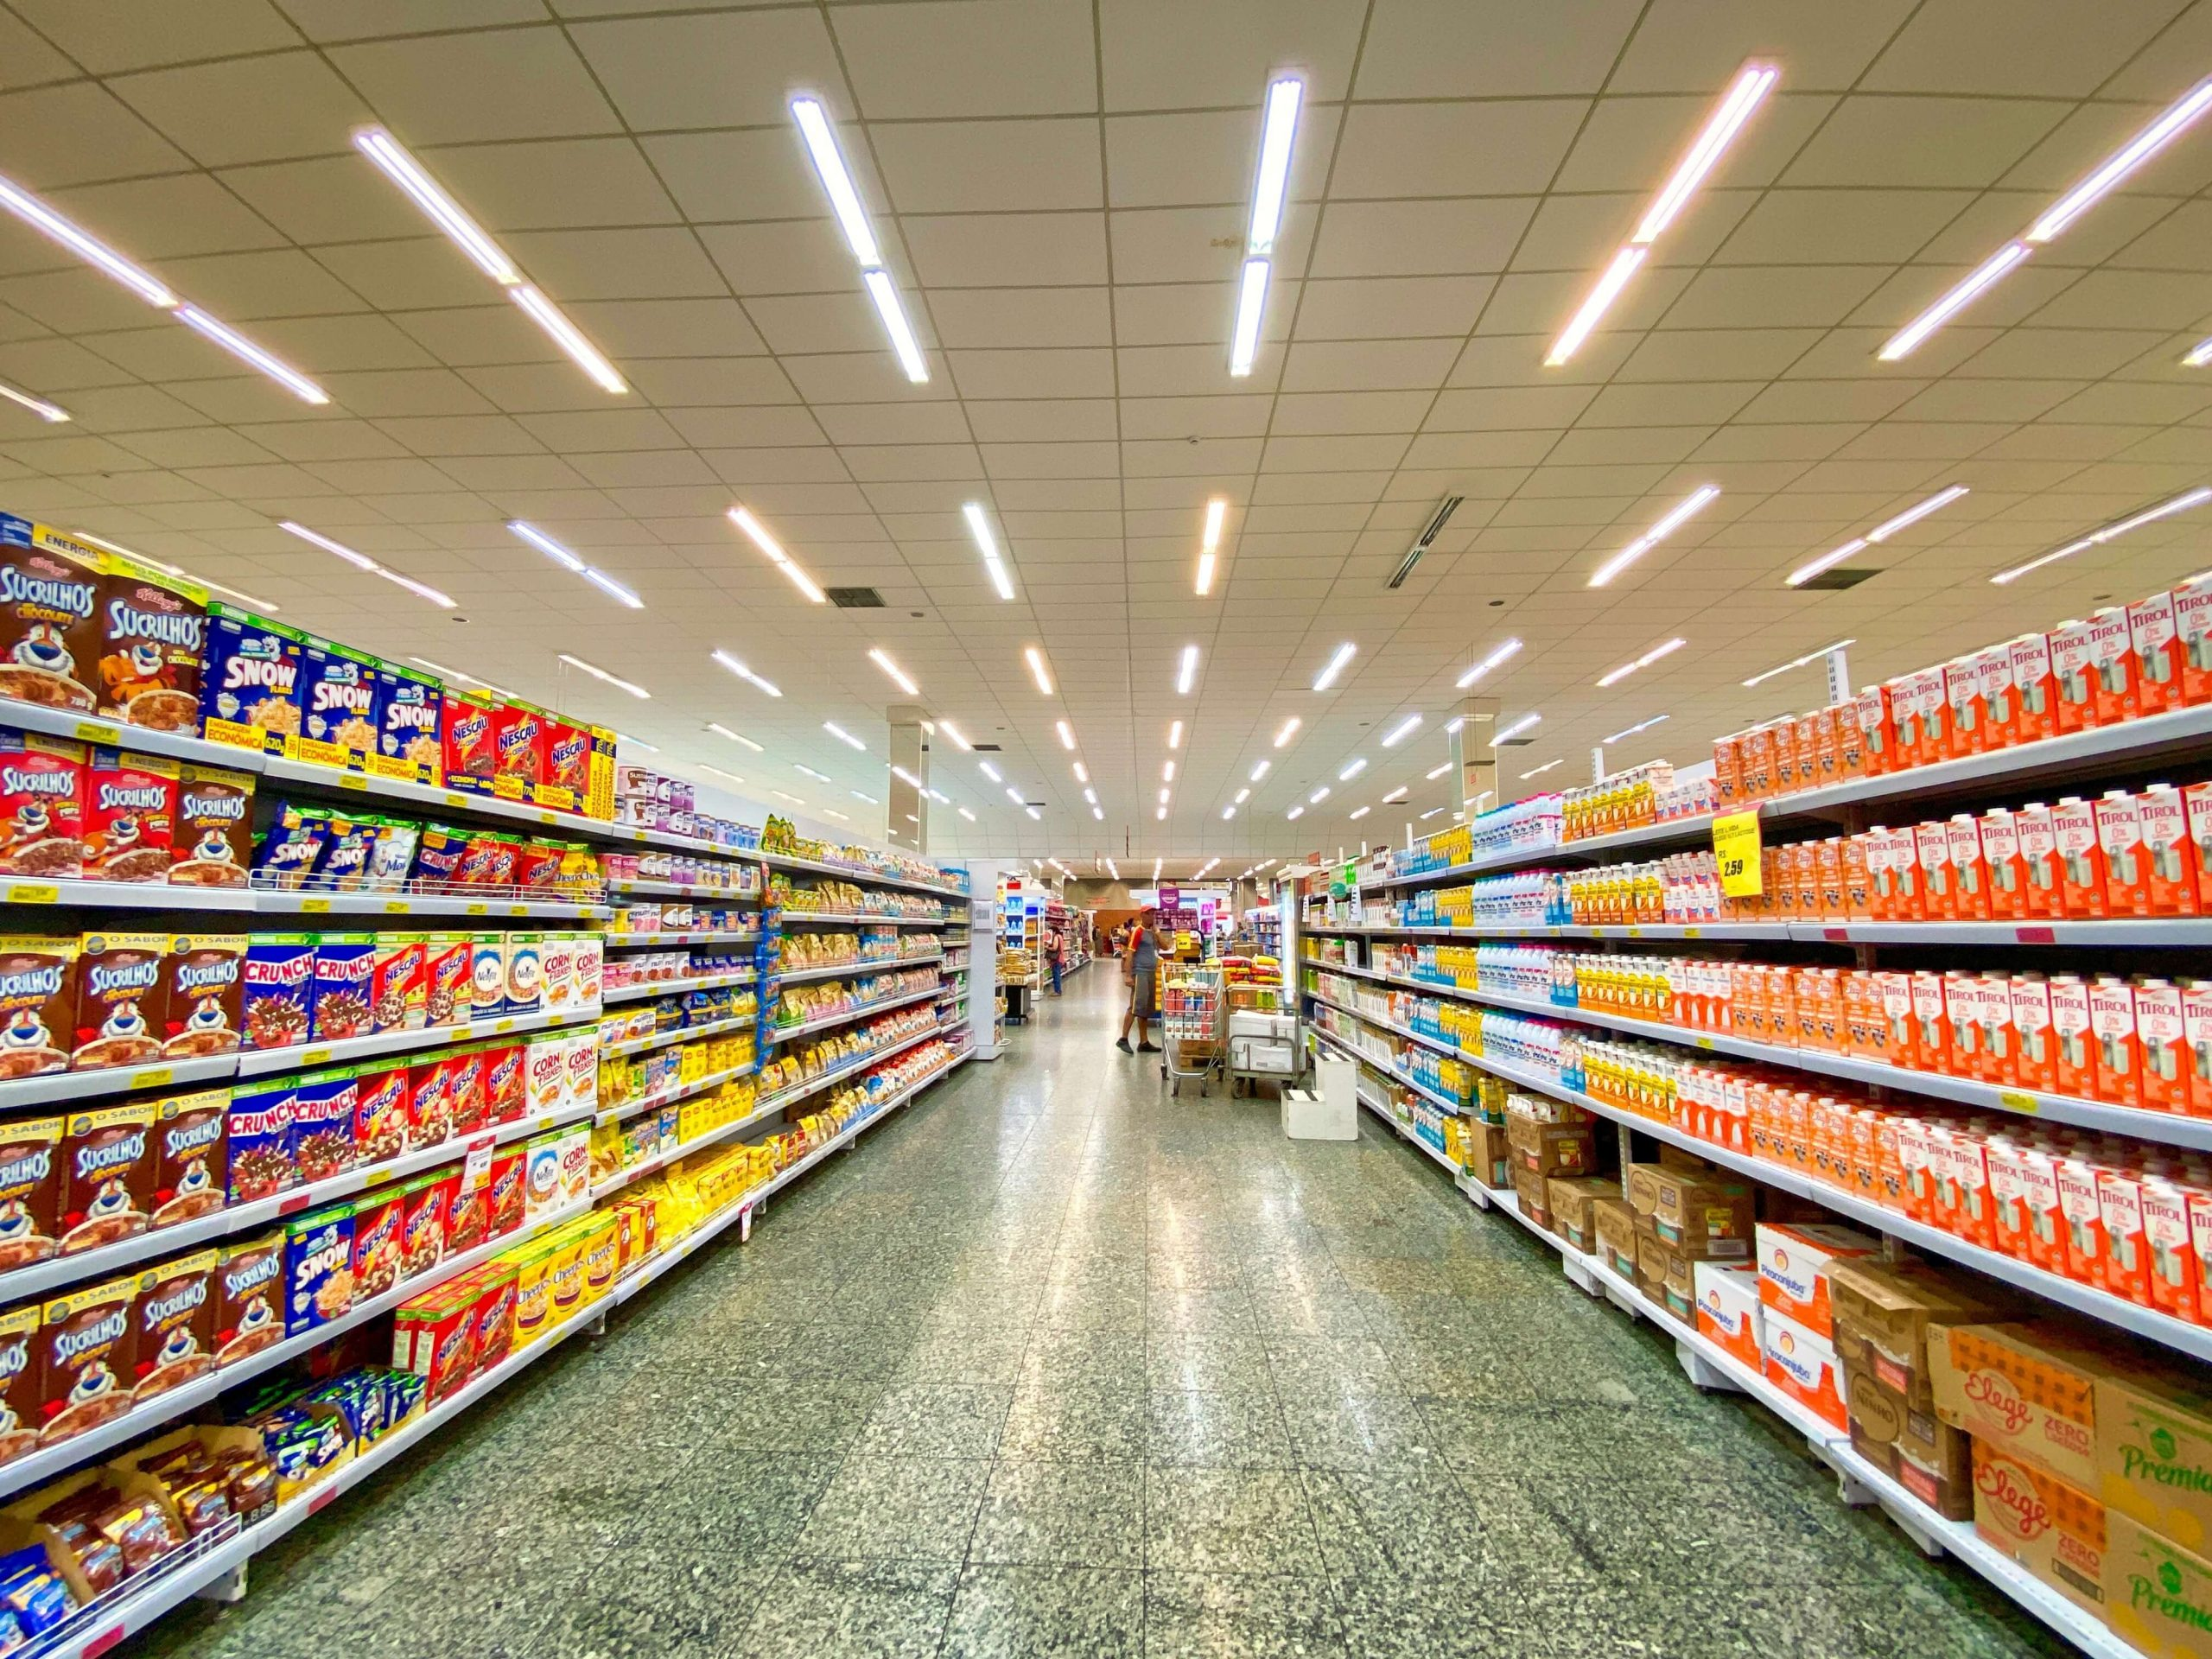 What Does It Mean by Retail Marketing